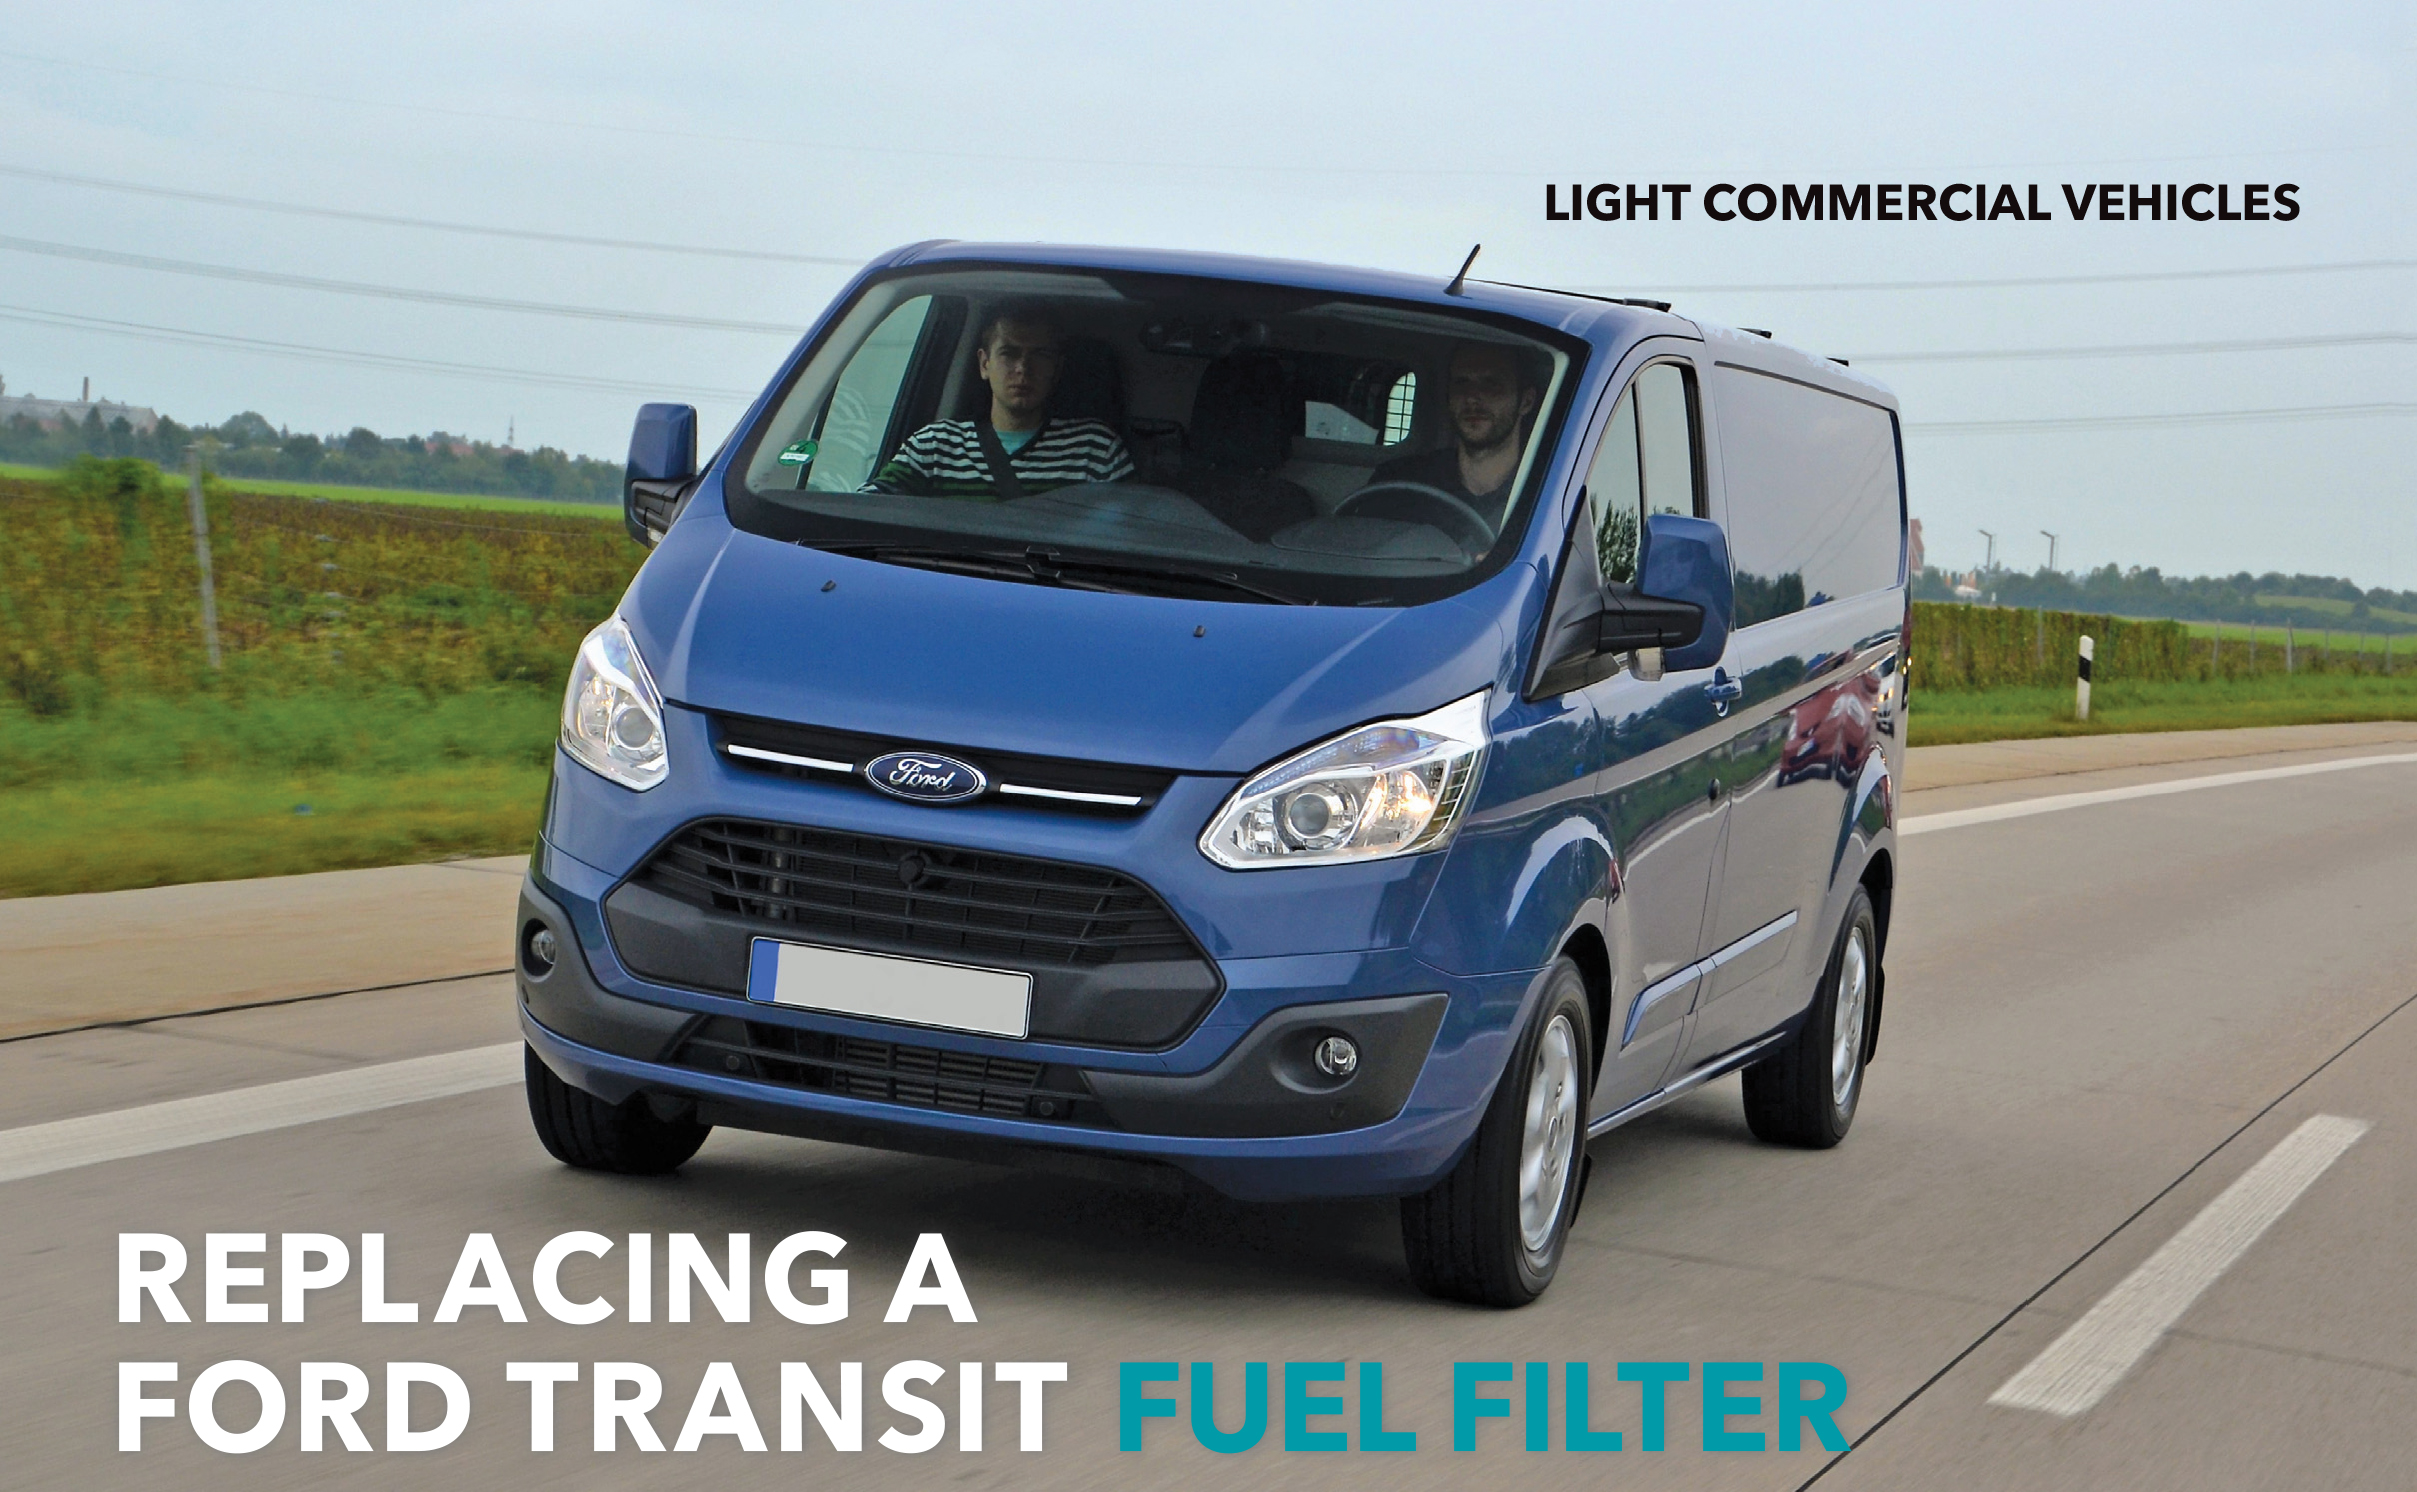 https://www.thomasgroupltd.co.uk/wp-content/uploads/2019/01/Replacing-Ford-Transite-Fuel-Filter-image.jpg